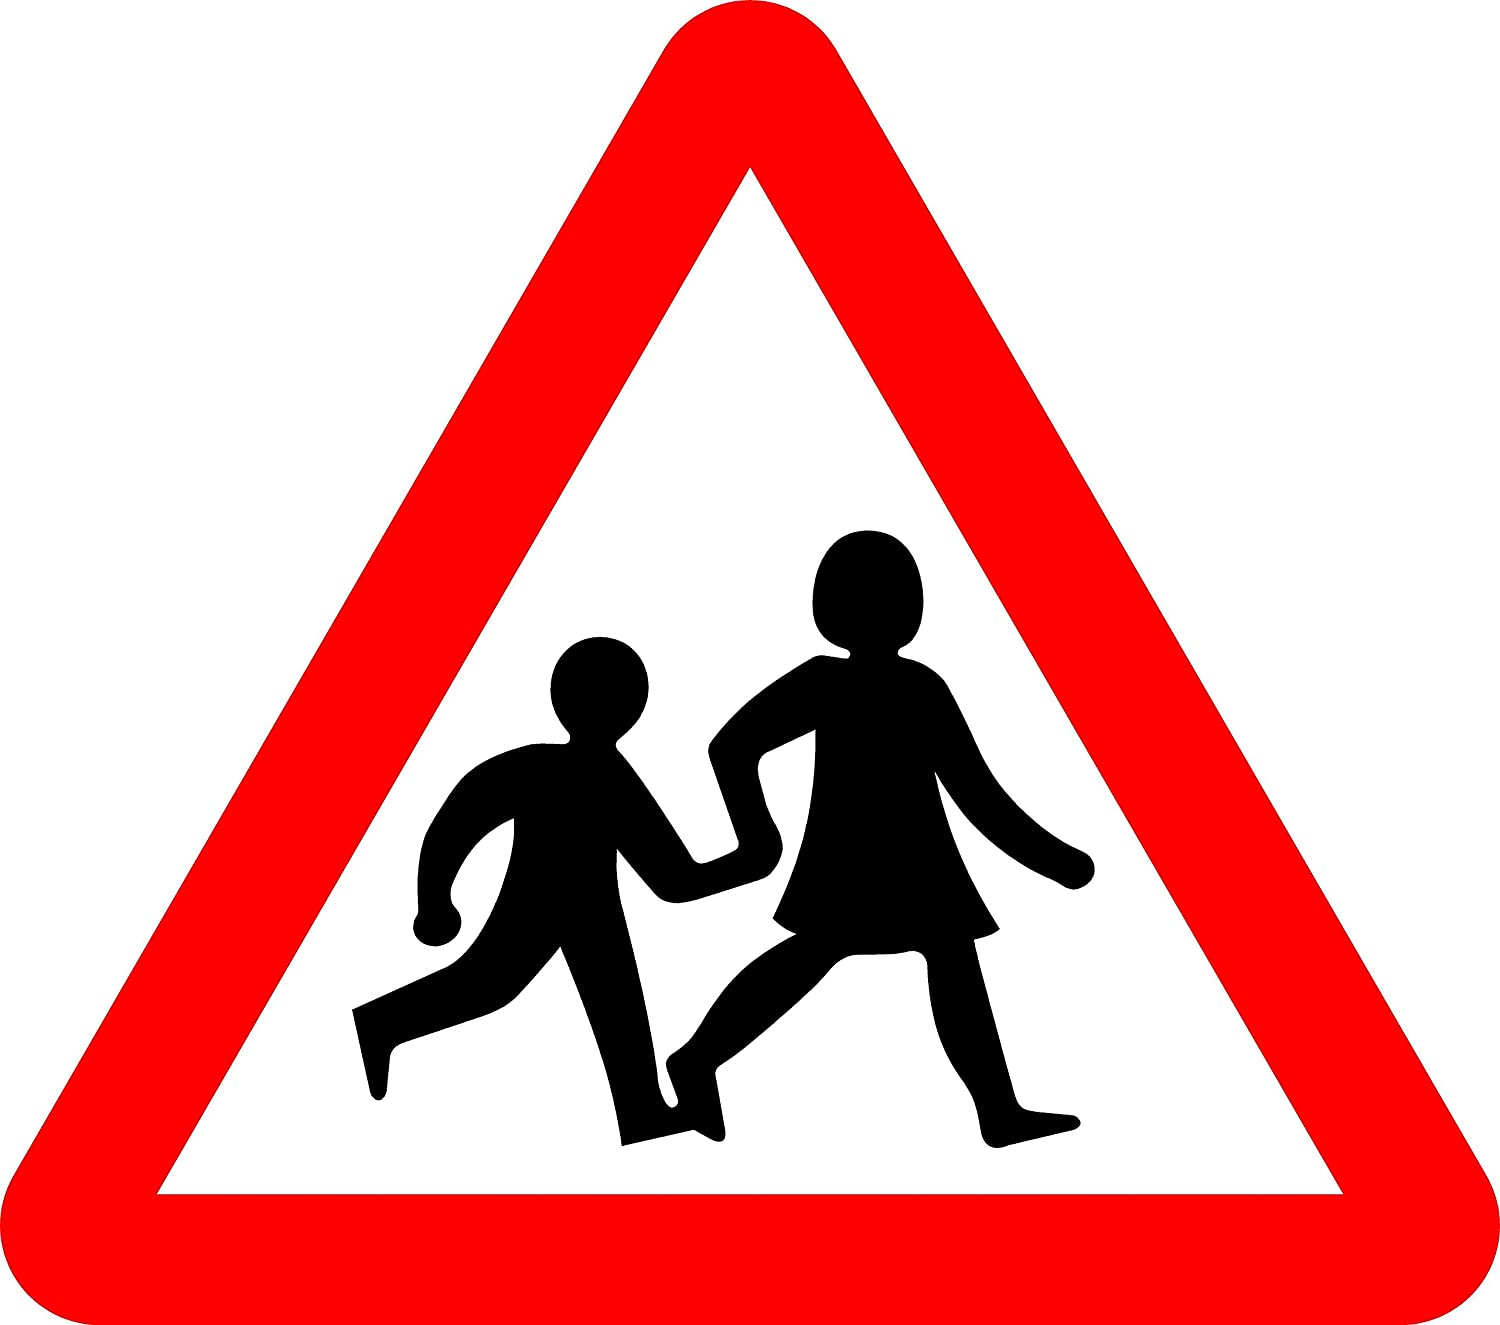 Children Crossing Road safety sign - 3mm Aluminium sign fitted with 2  strips Channel to rear for mounting on post 600mm x 600mm: Amazon.co.uk:  DIY & Tools